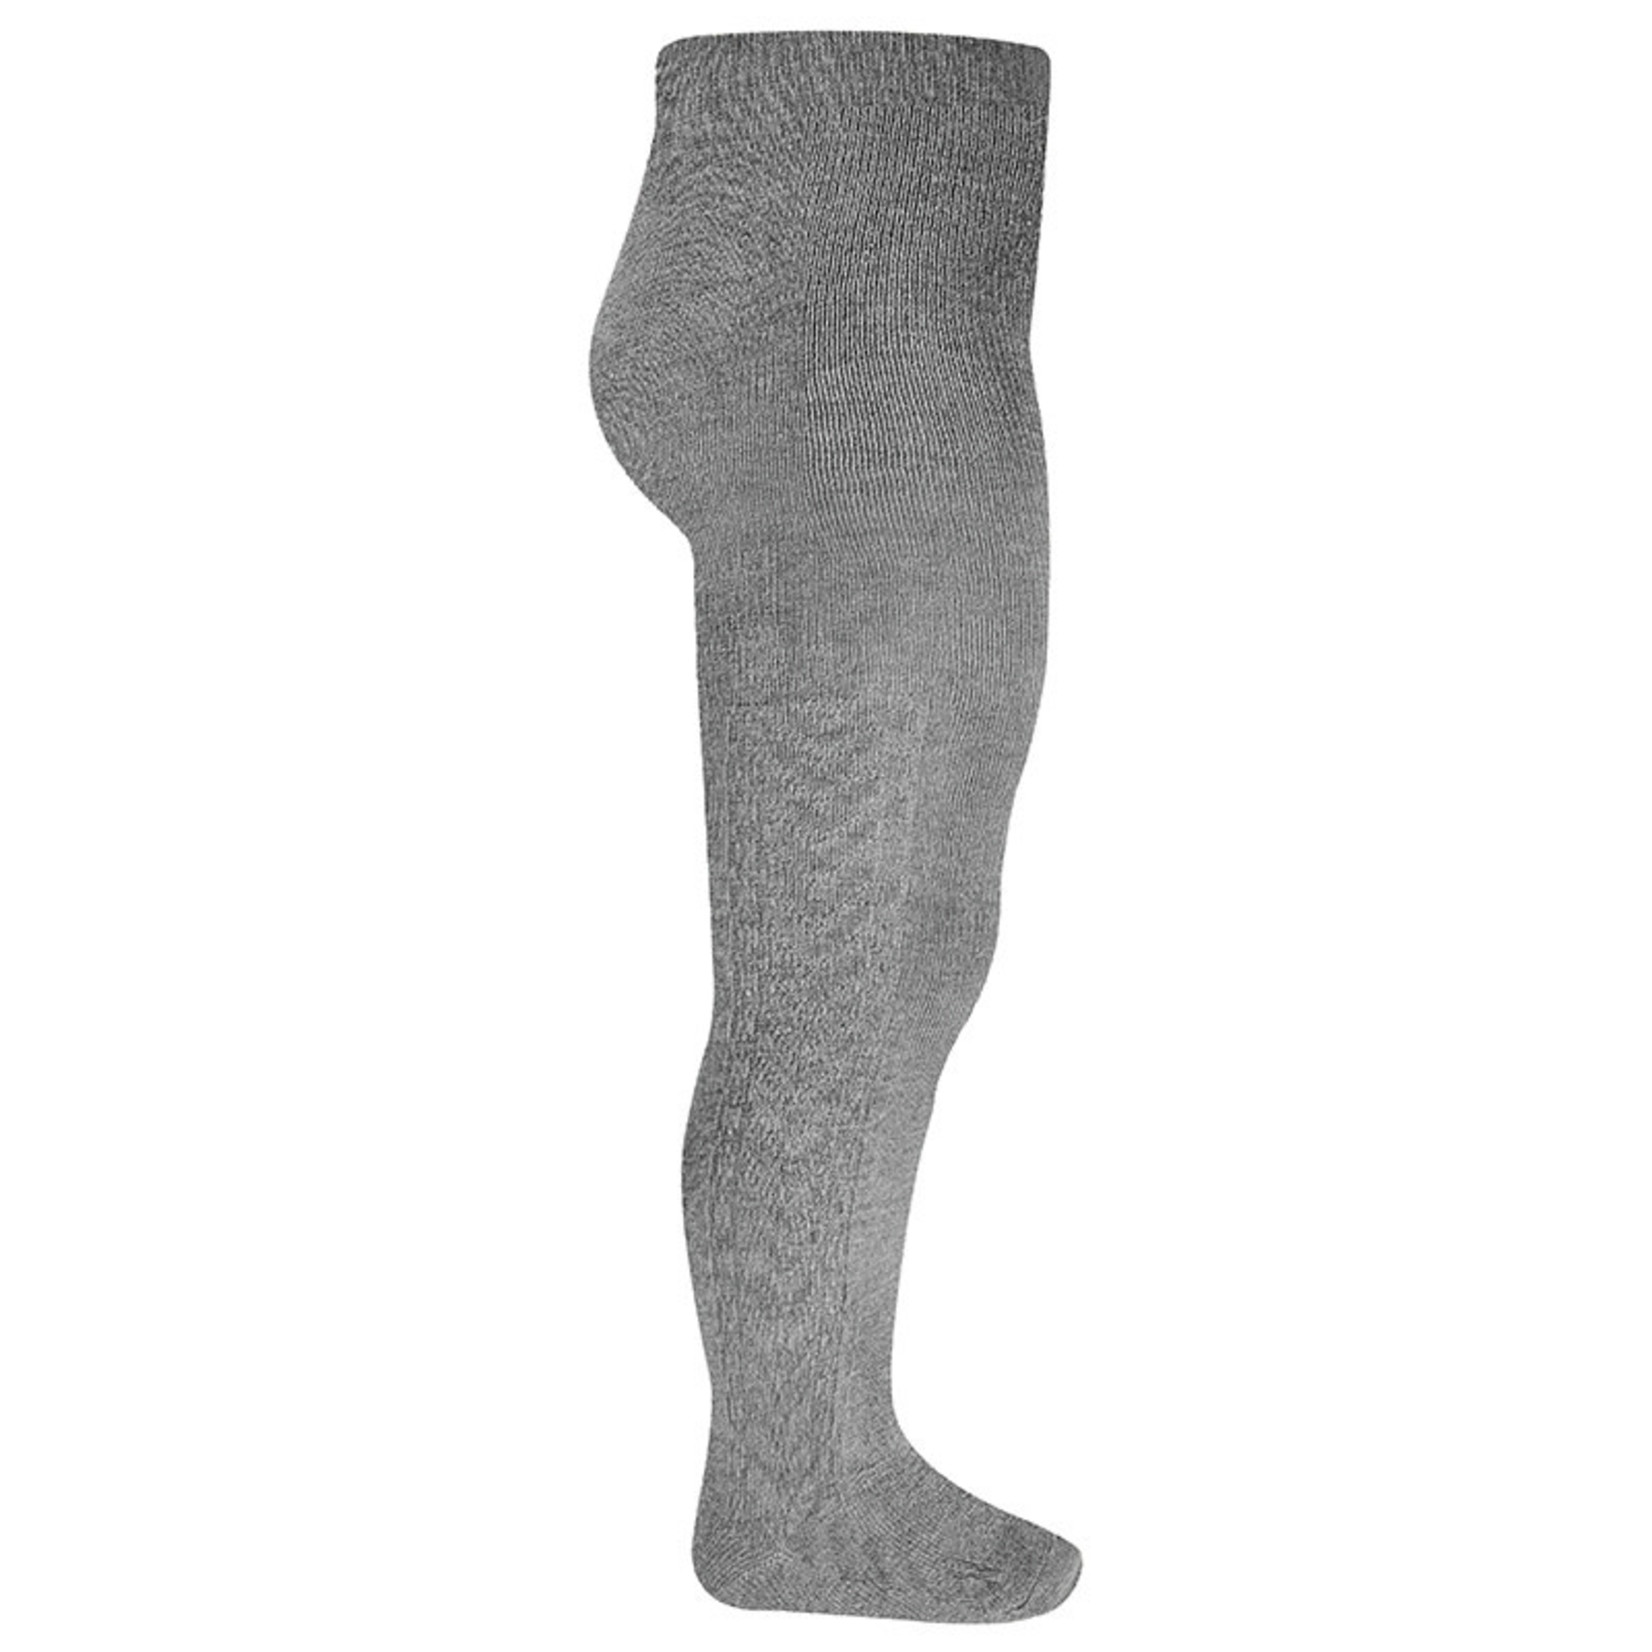 Condor Side Patterned Tights - Gray